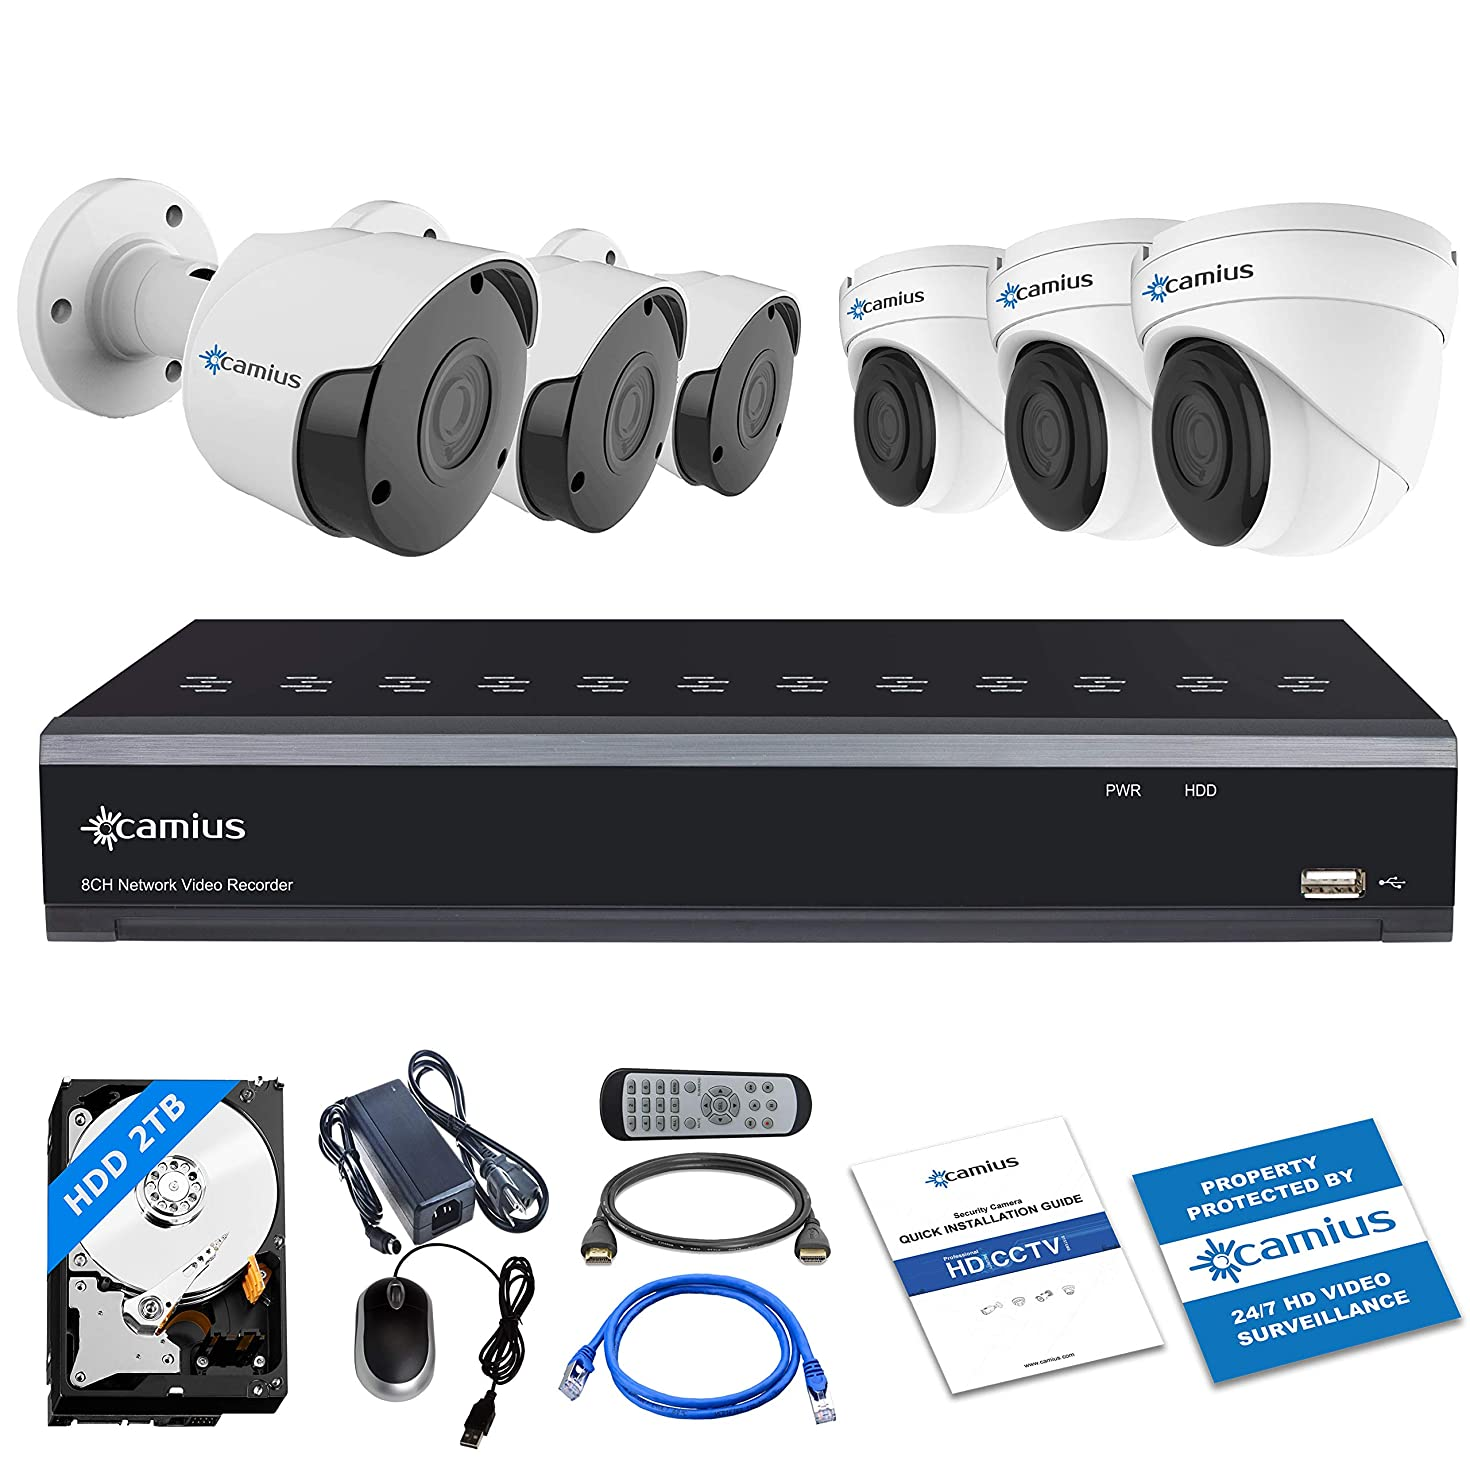 Camius 8CH 5MP PoE Home Security Camera System with Audio, 6 Wired Surveillance IP Cameras (3 Bullet, 3 Dome), 4K 8 Channel NVR with 2 TB HDD, Browser,Mac,PC, Mobile Camera App View IPV1128P3B3I5MA2T